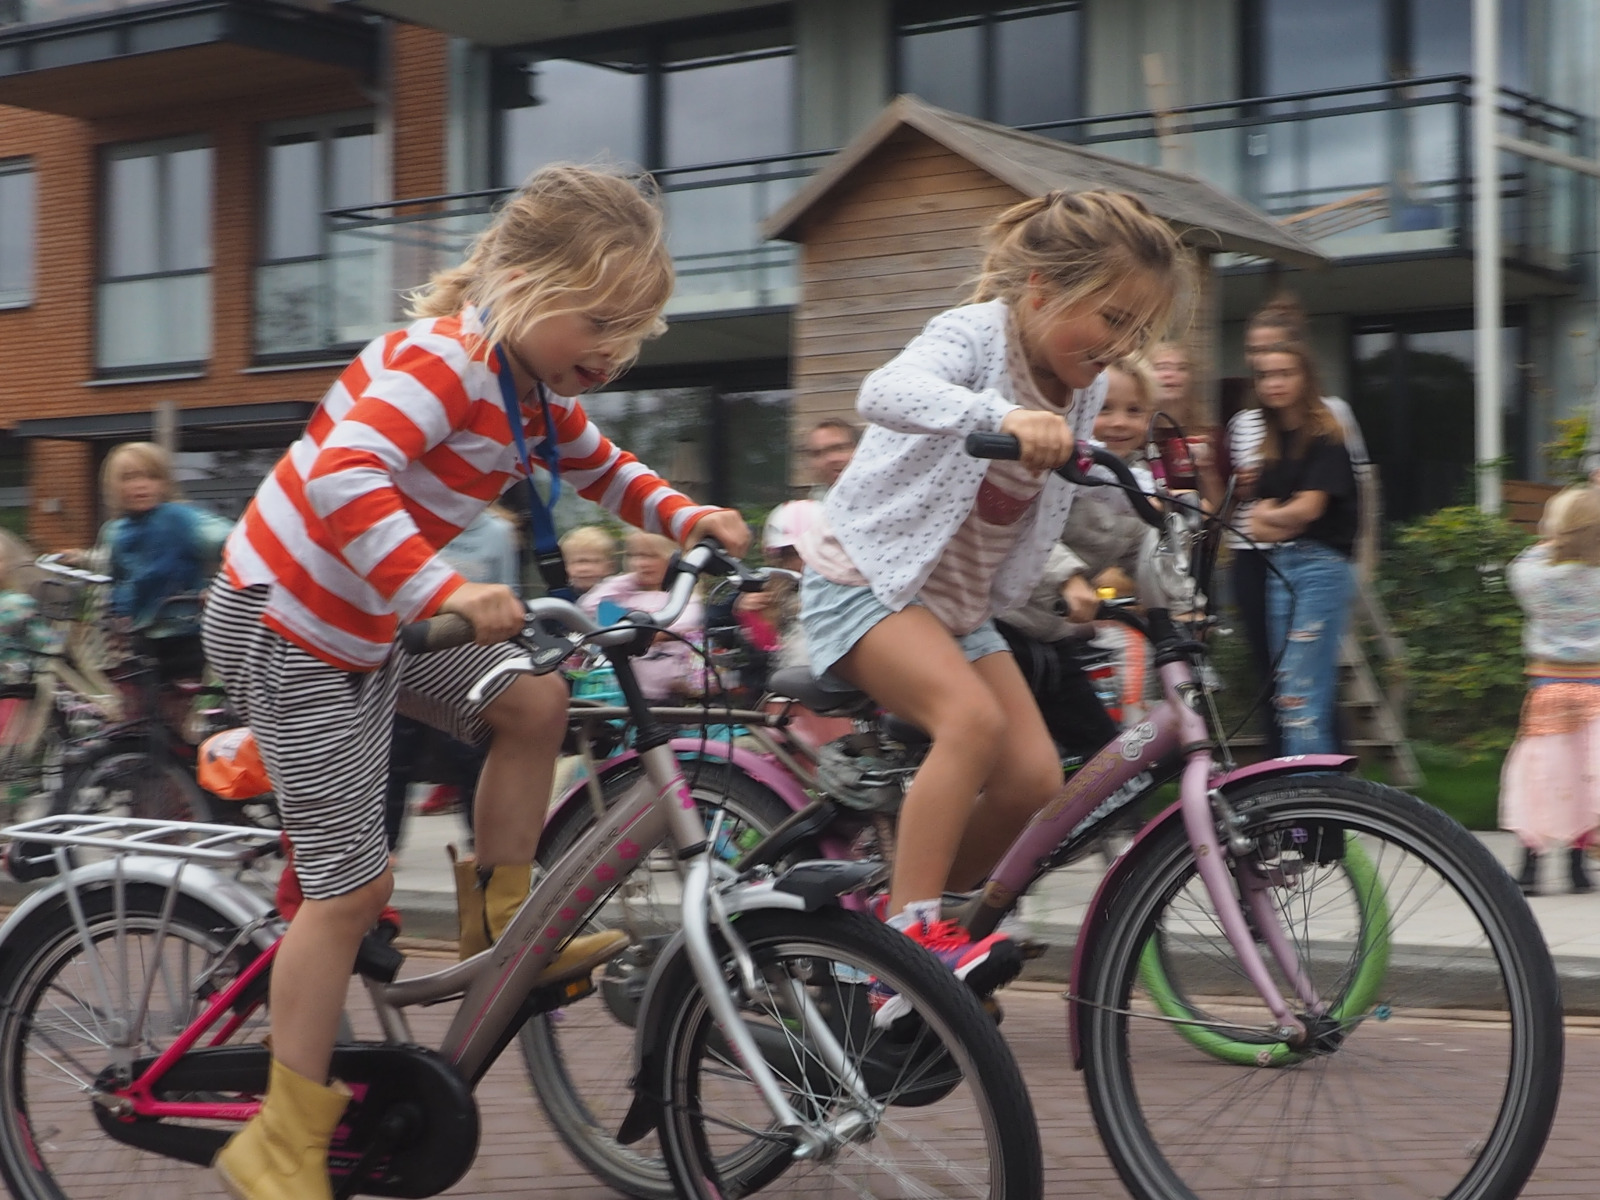 Kids enjoying their bicycle race in Amsterdam